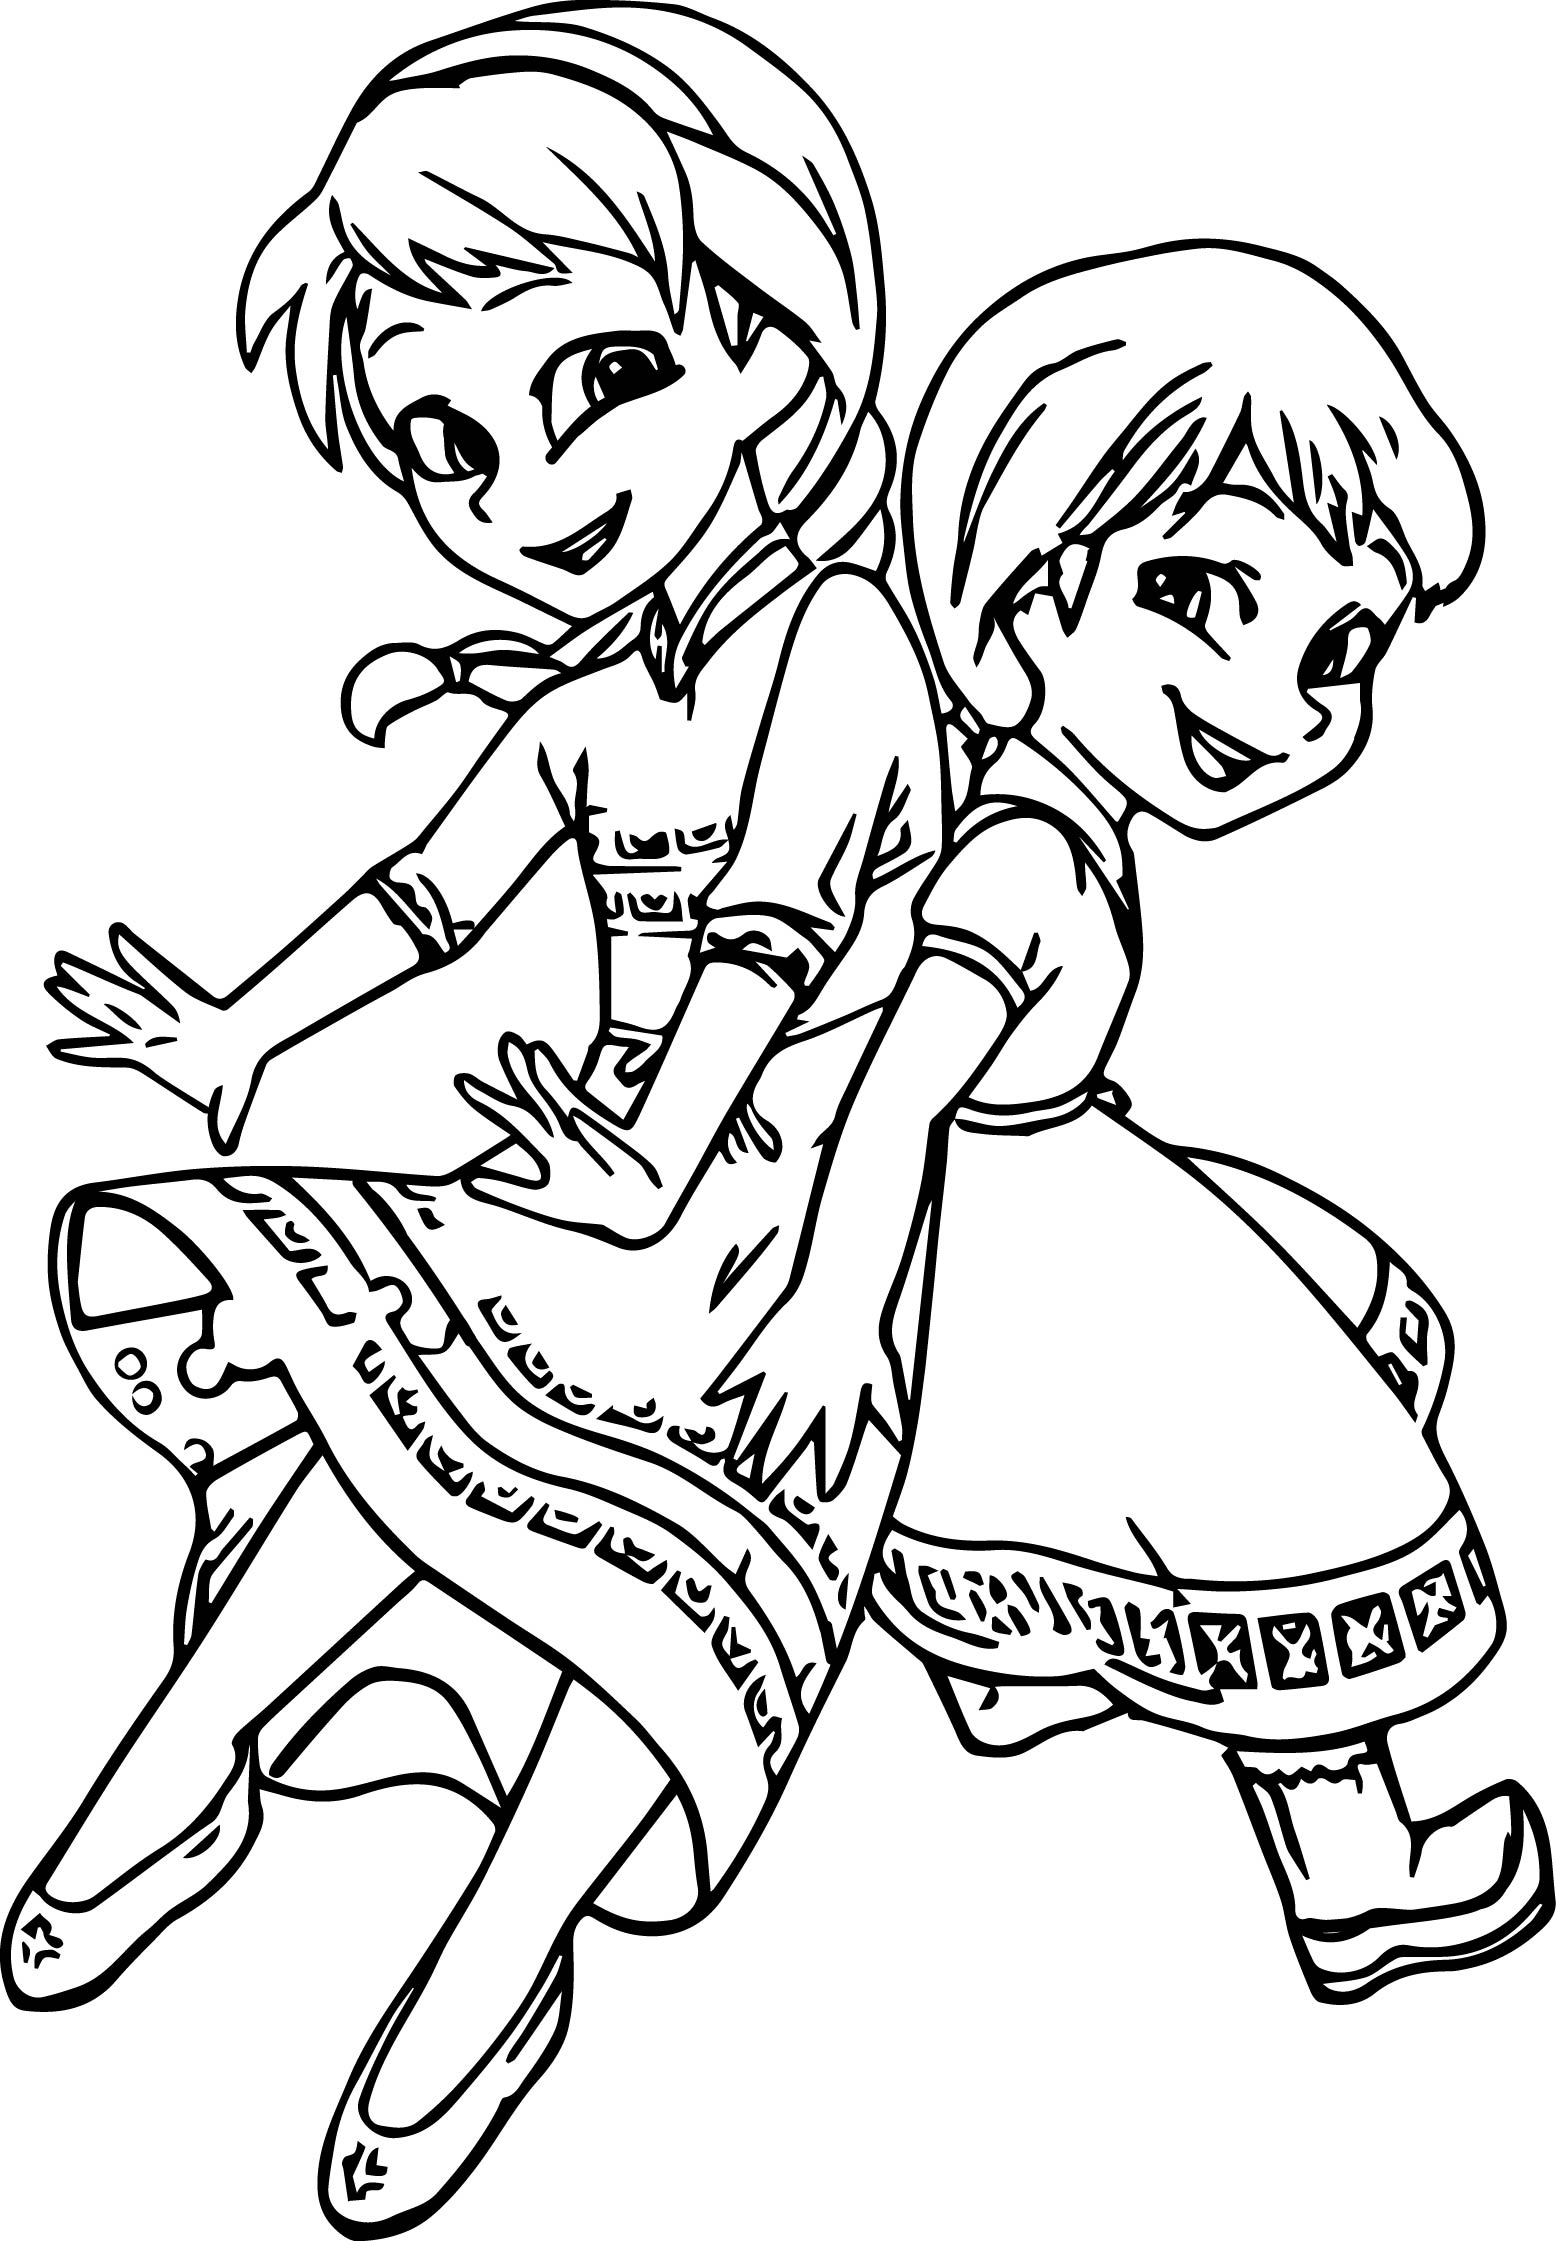 Anna And Elsa Coloring Pages Very Cute Girls Anna Elsa Coloring Page  Wecoloringpage